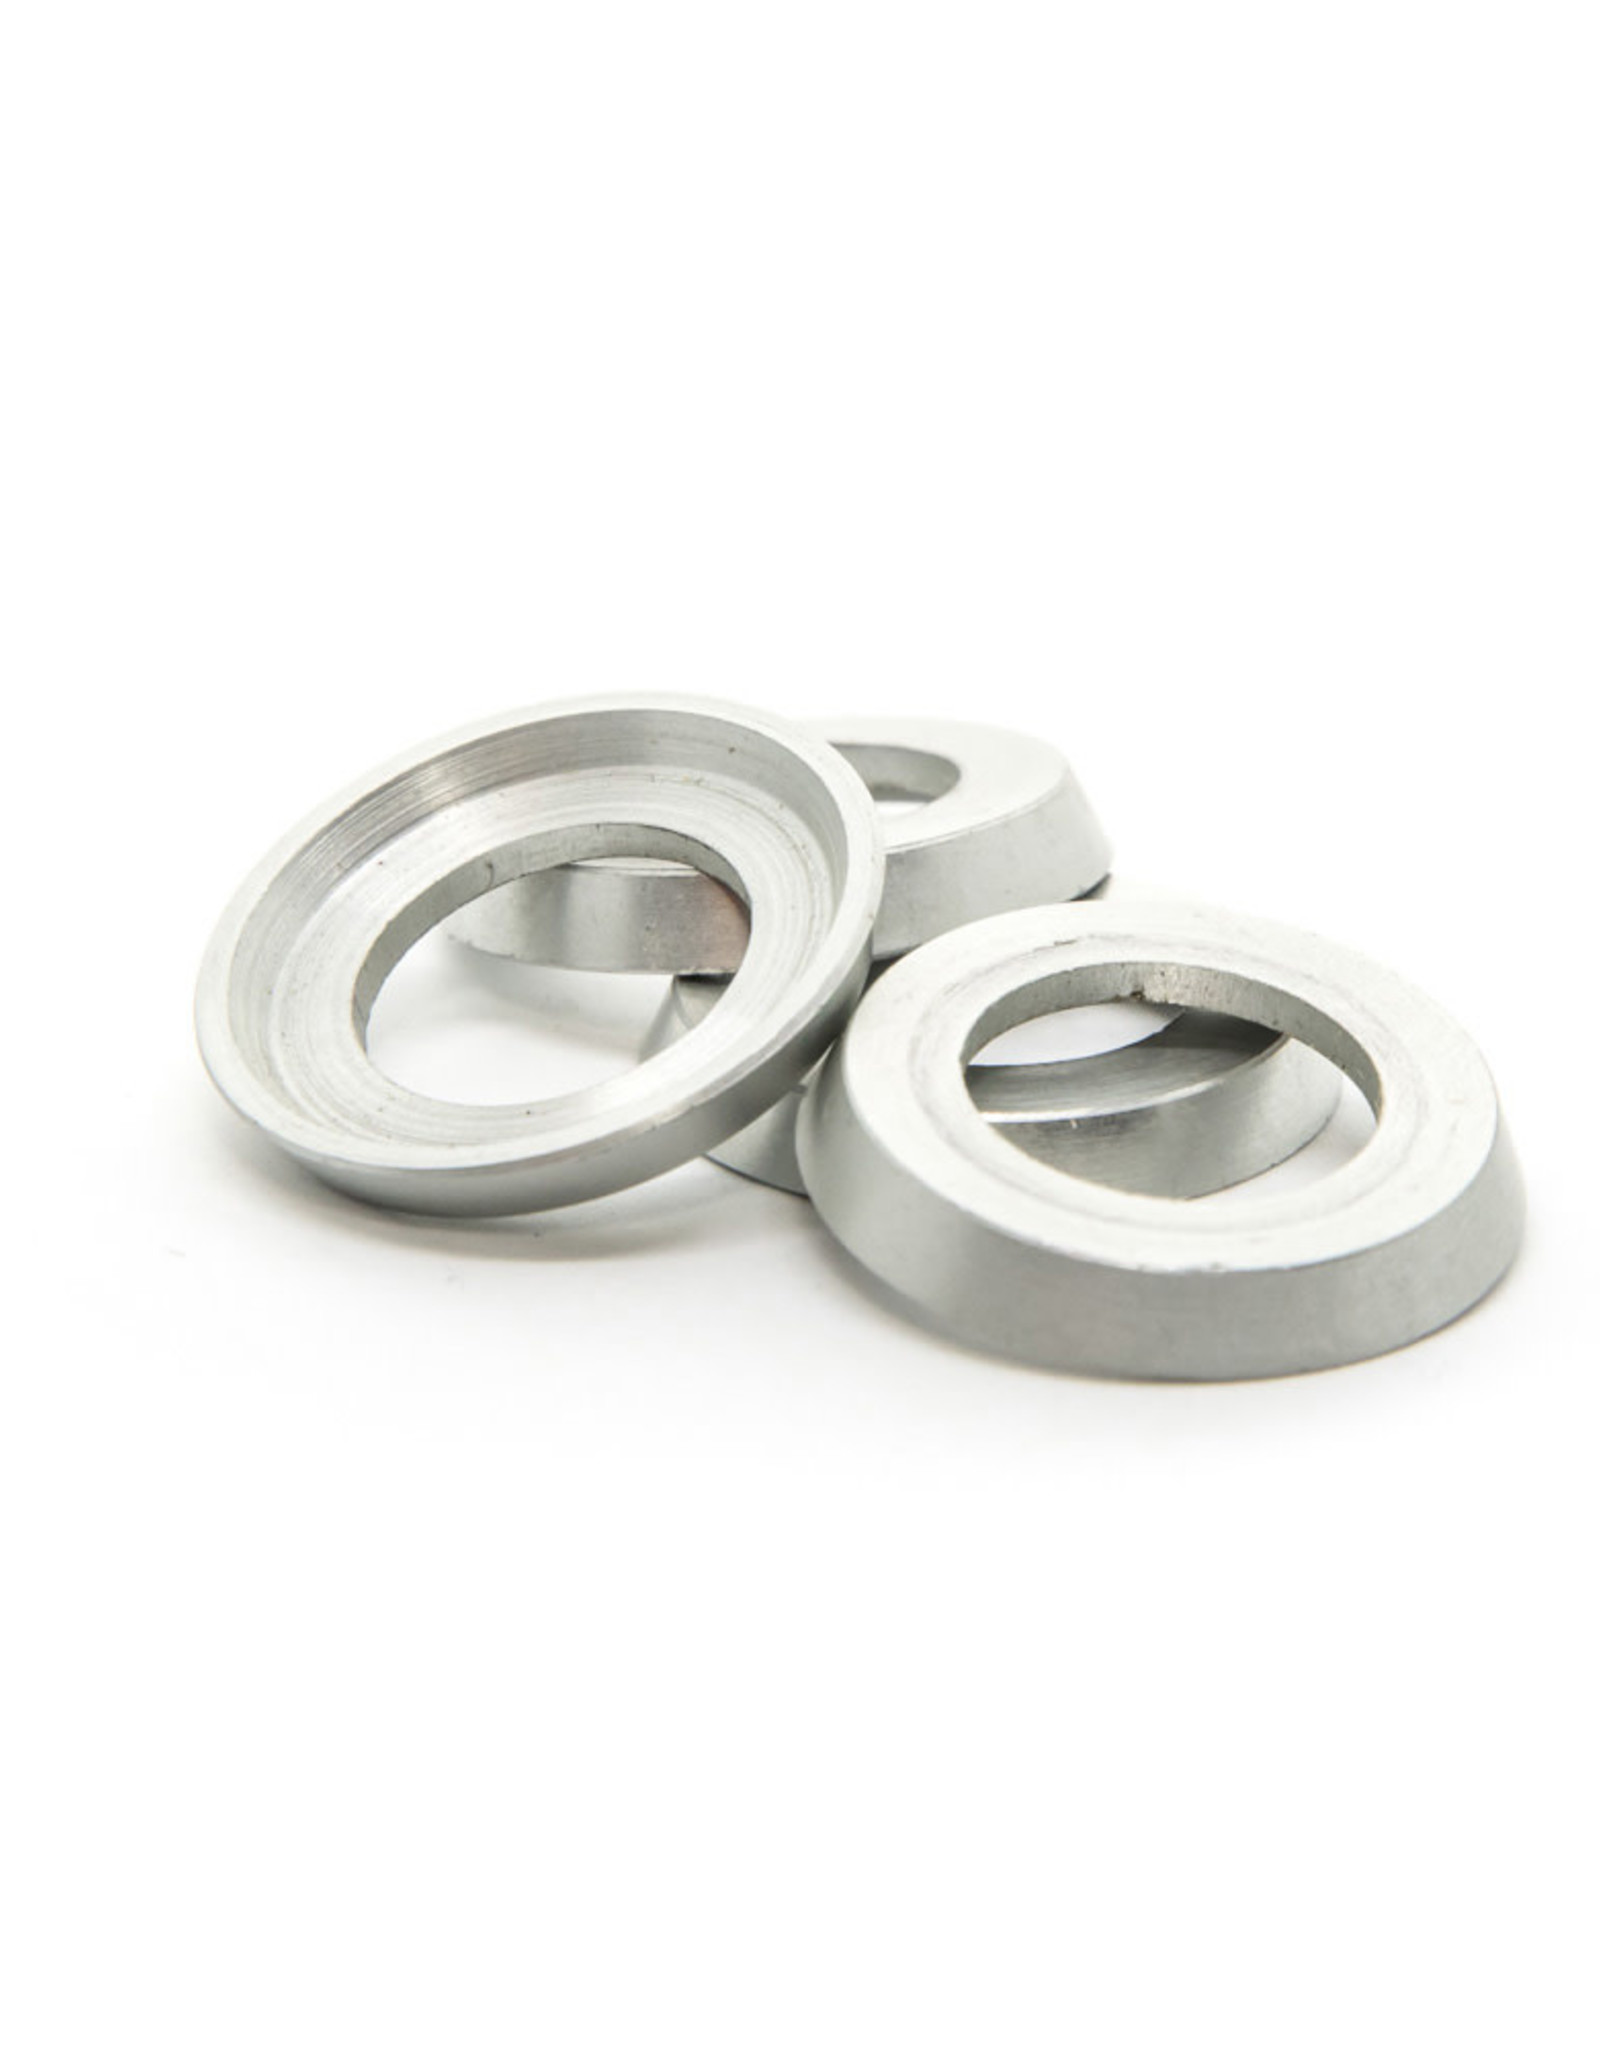 Roll Line Roll Line Bottom Cushion Cup Retainer (Blaster/Variant), Each